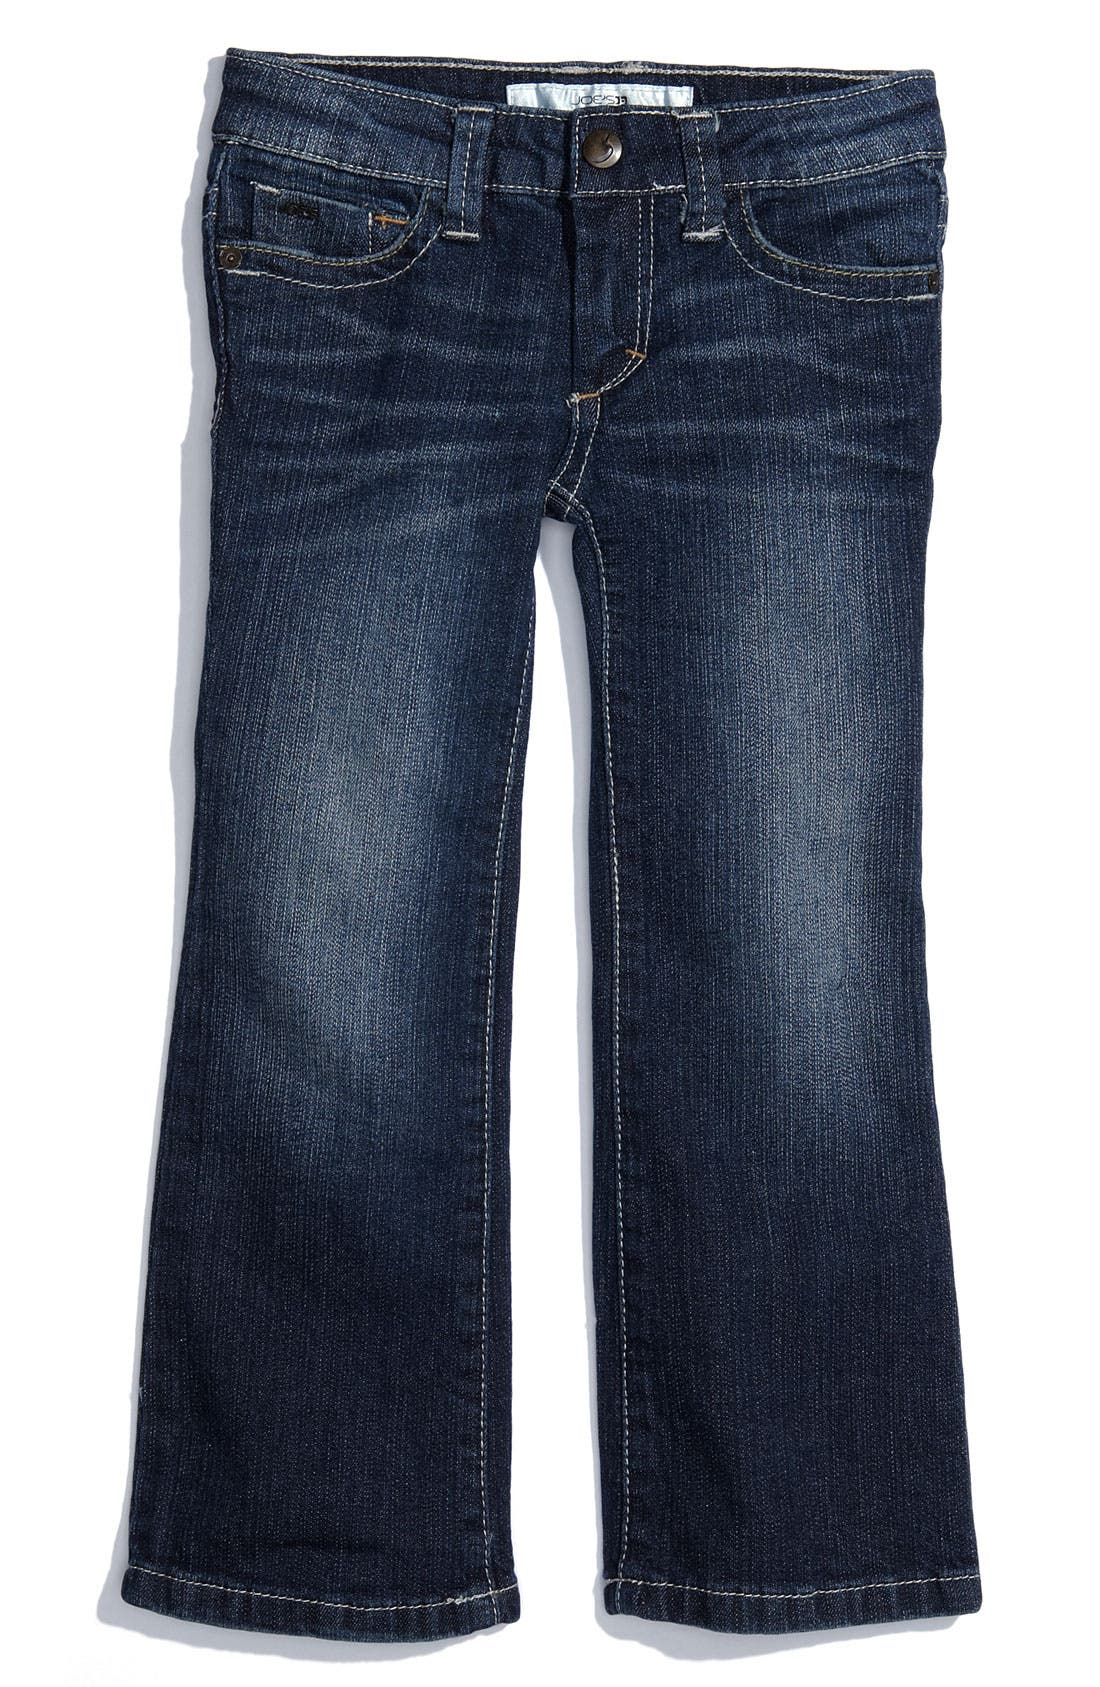 'The Bell' Jeans,                             Alternate thumbnail 2, color,                             478